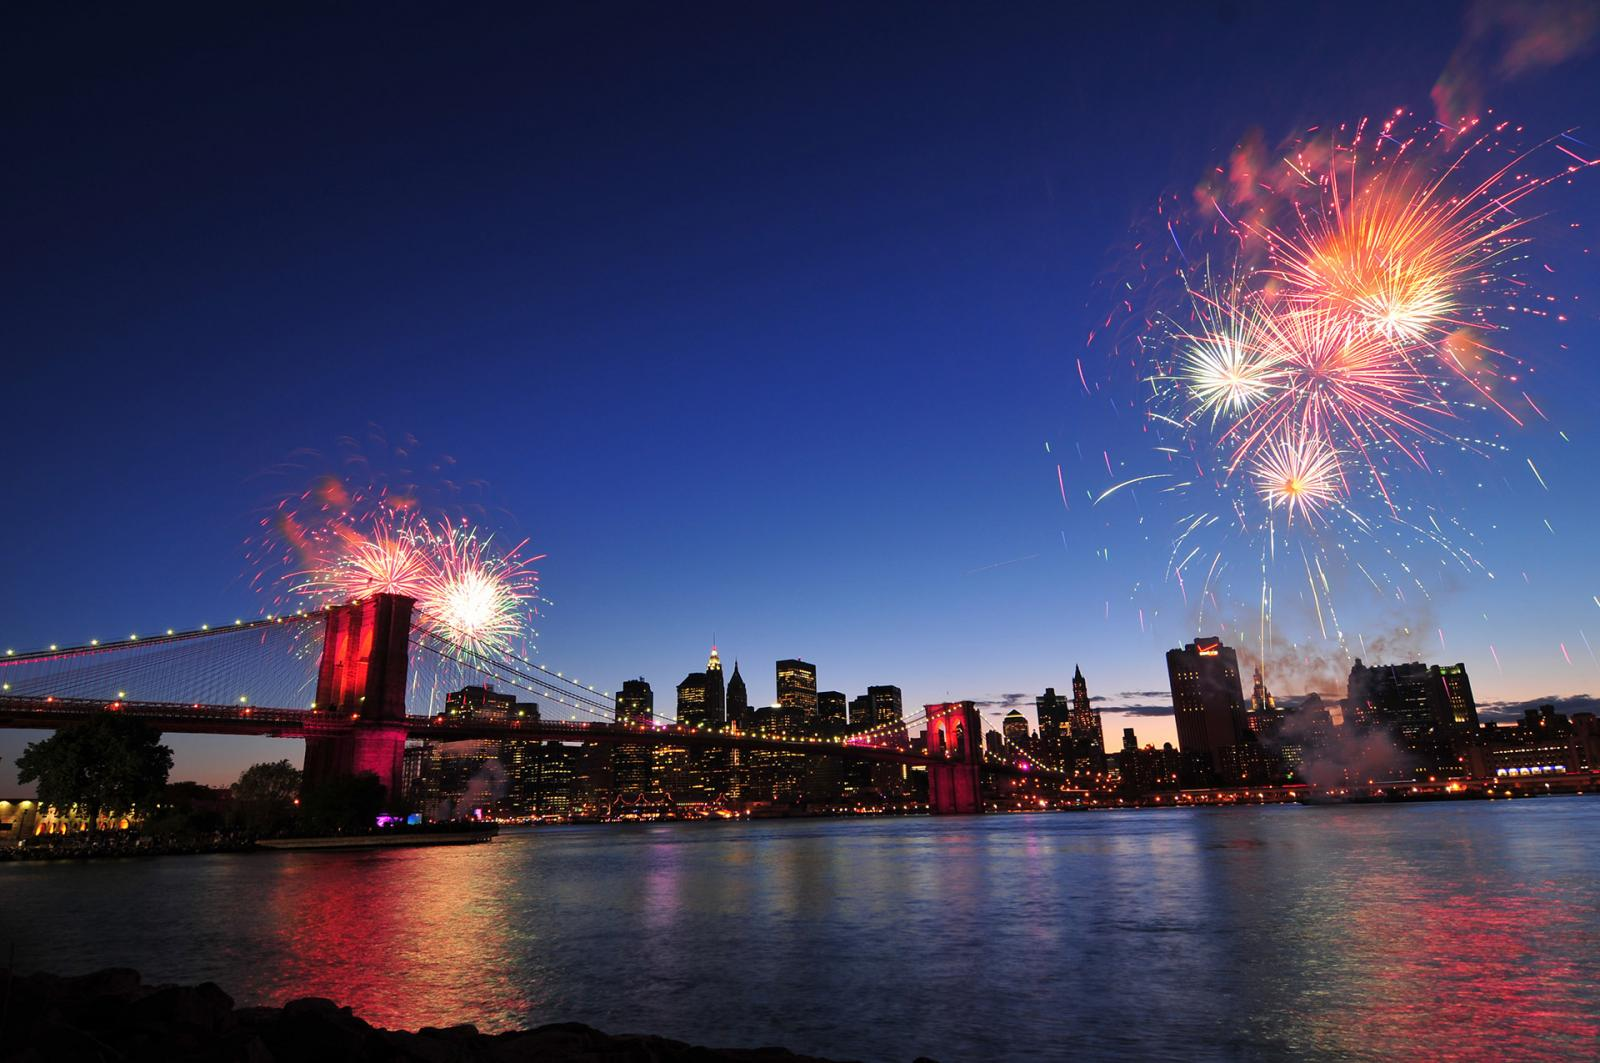 Brooklyn bridge and Fireworks.